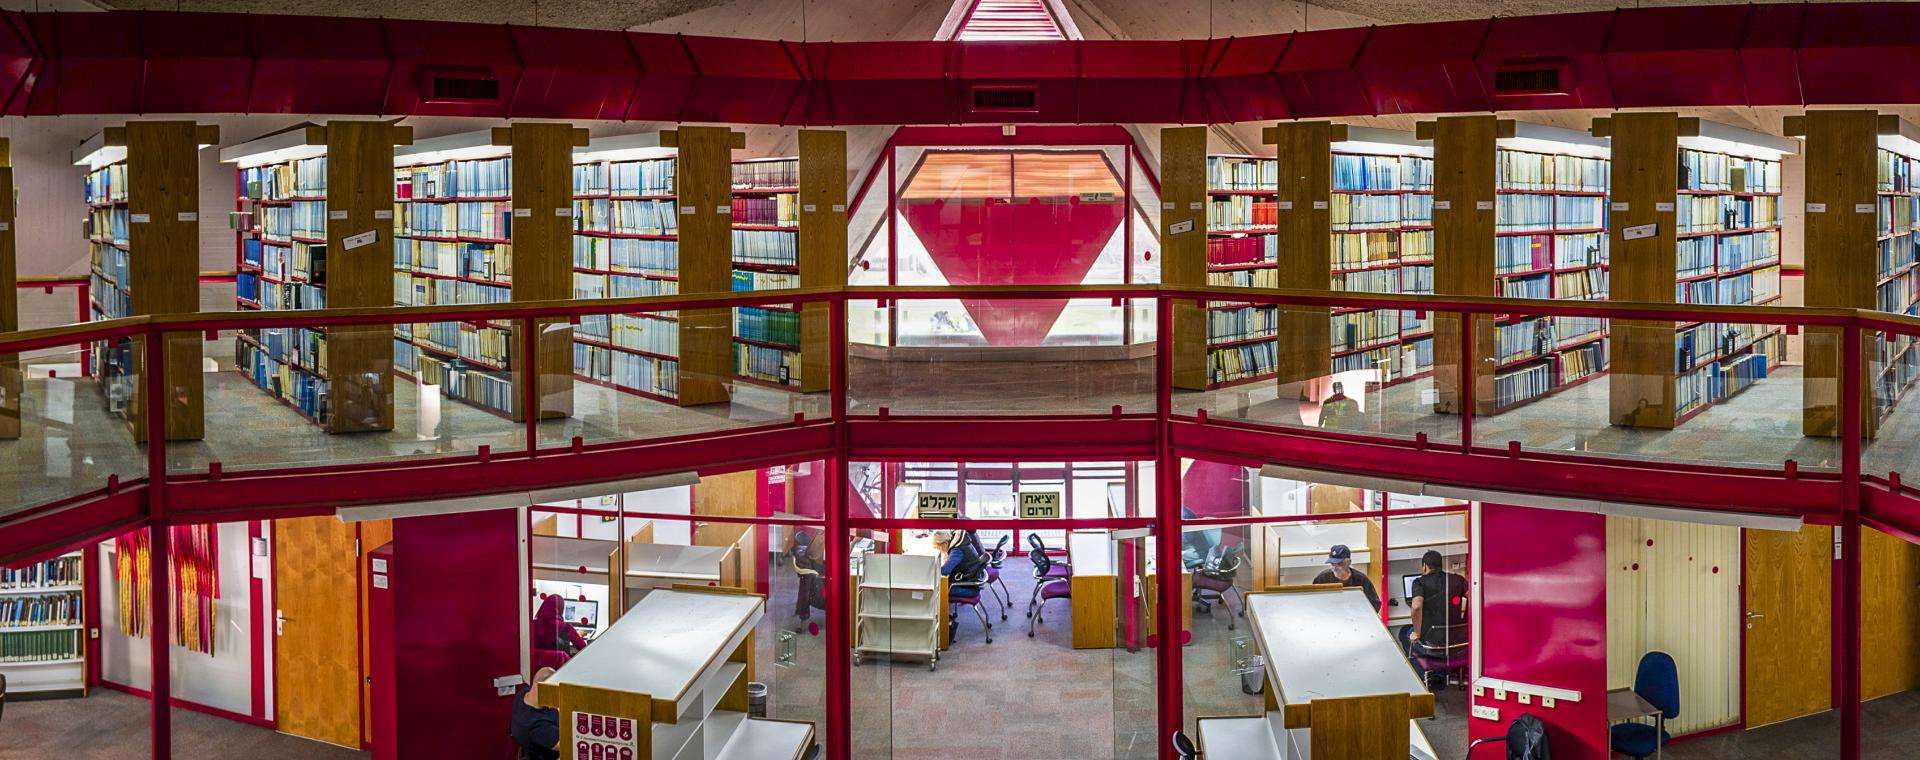 Medical Library, Ben-Gurion University, by Robert Dawson